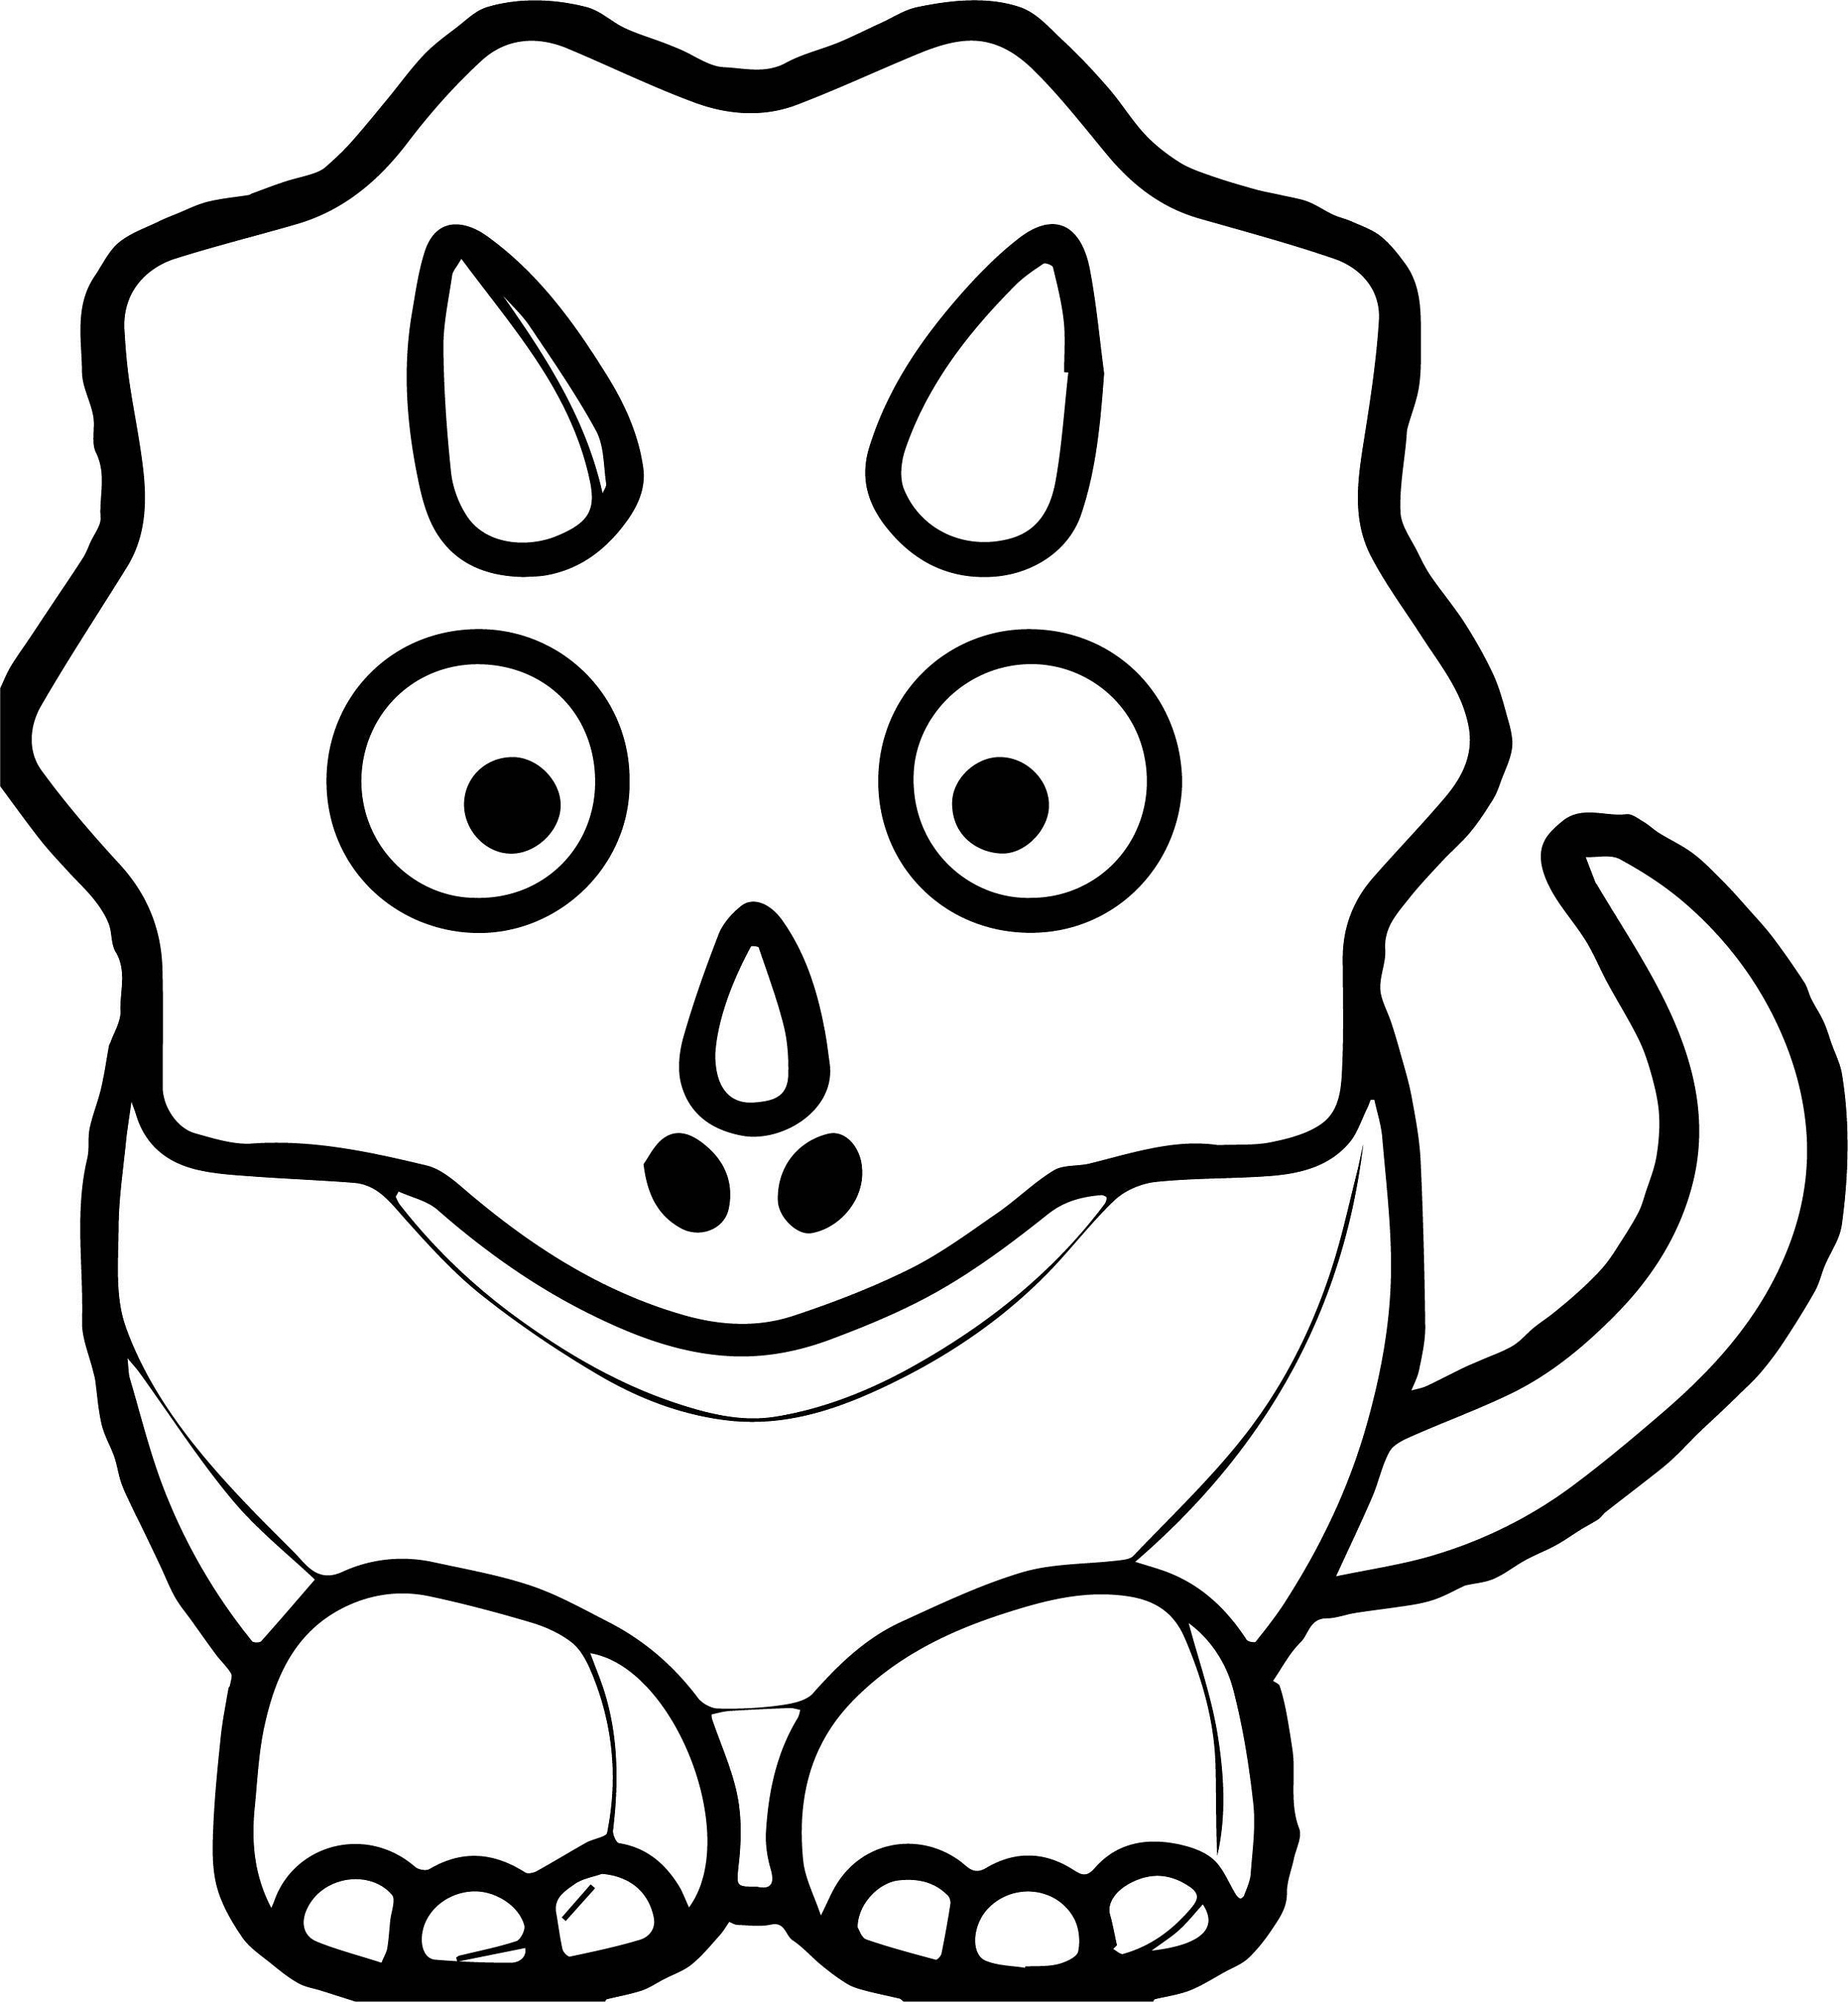 simple dinosaur coloring pages easy dinosaur coloring pages coloring home pages dinosaur simple coloring